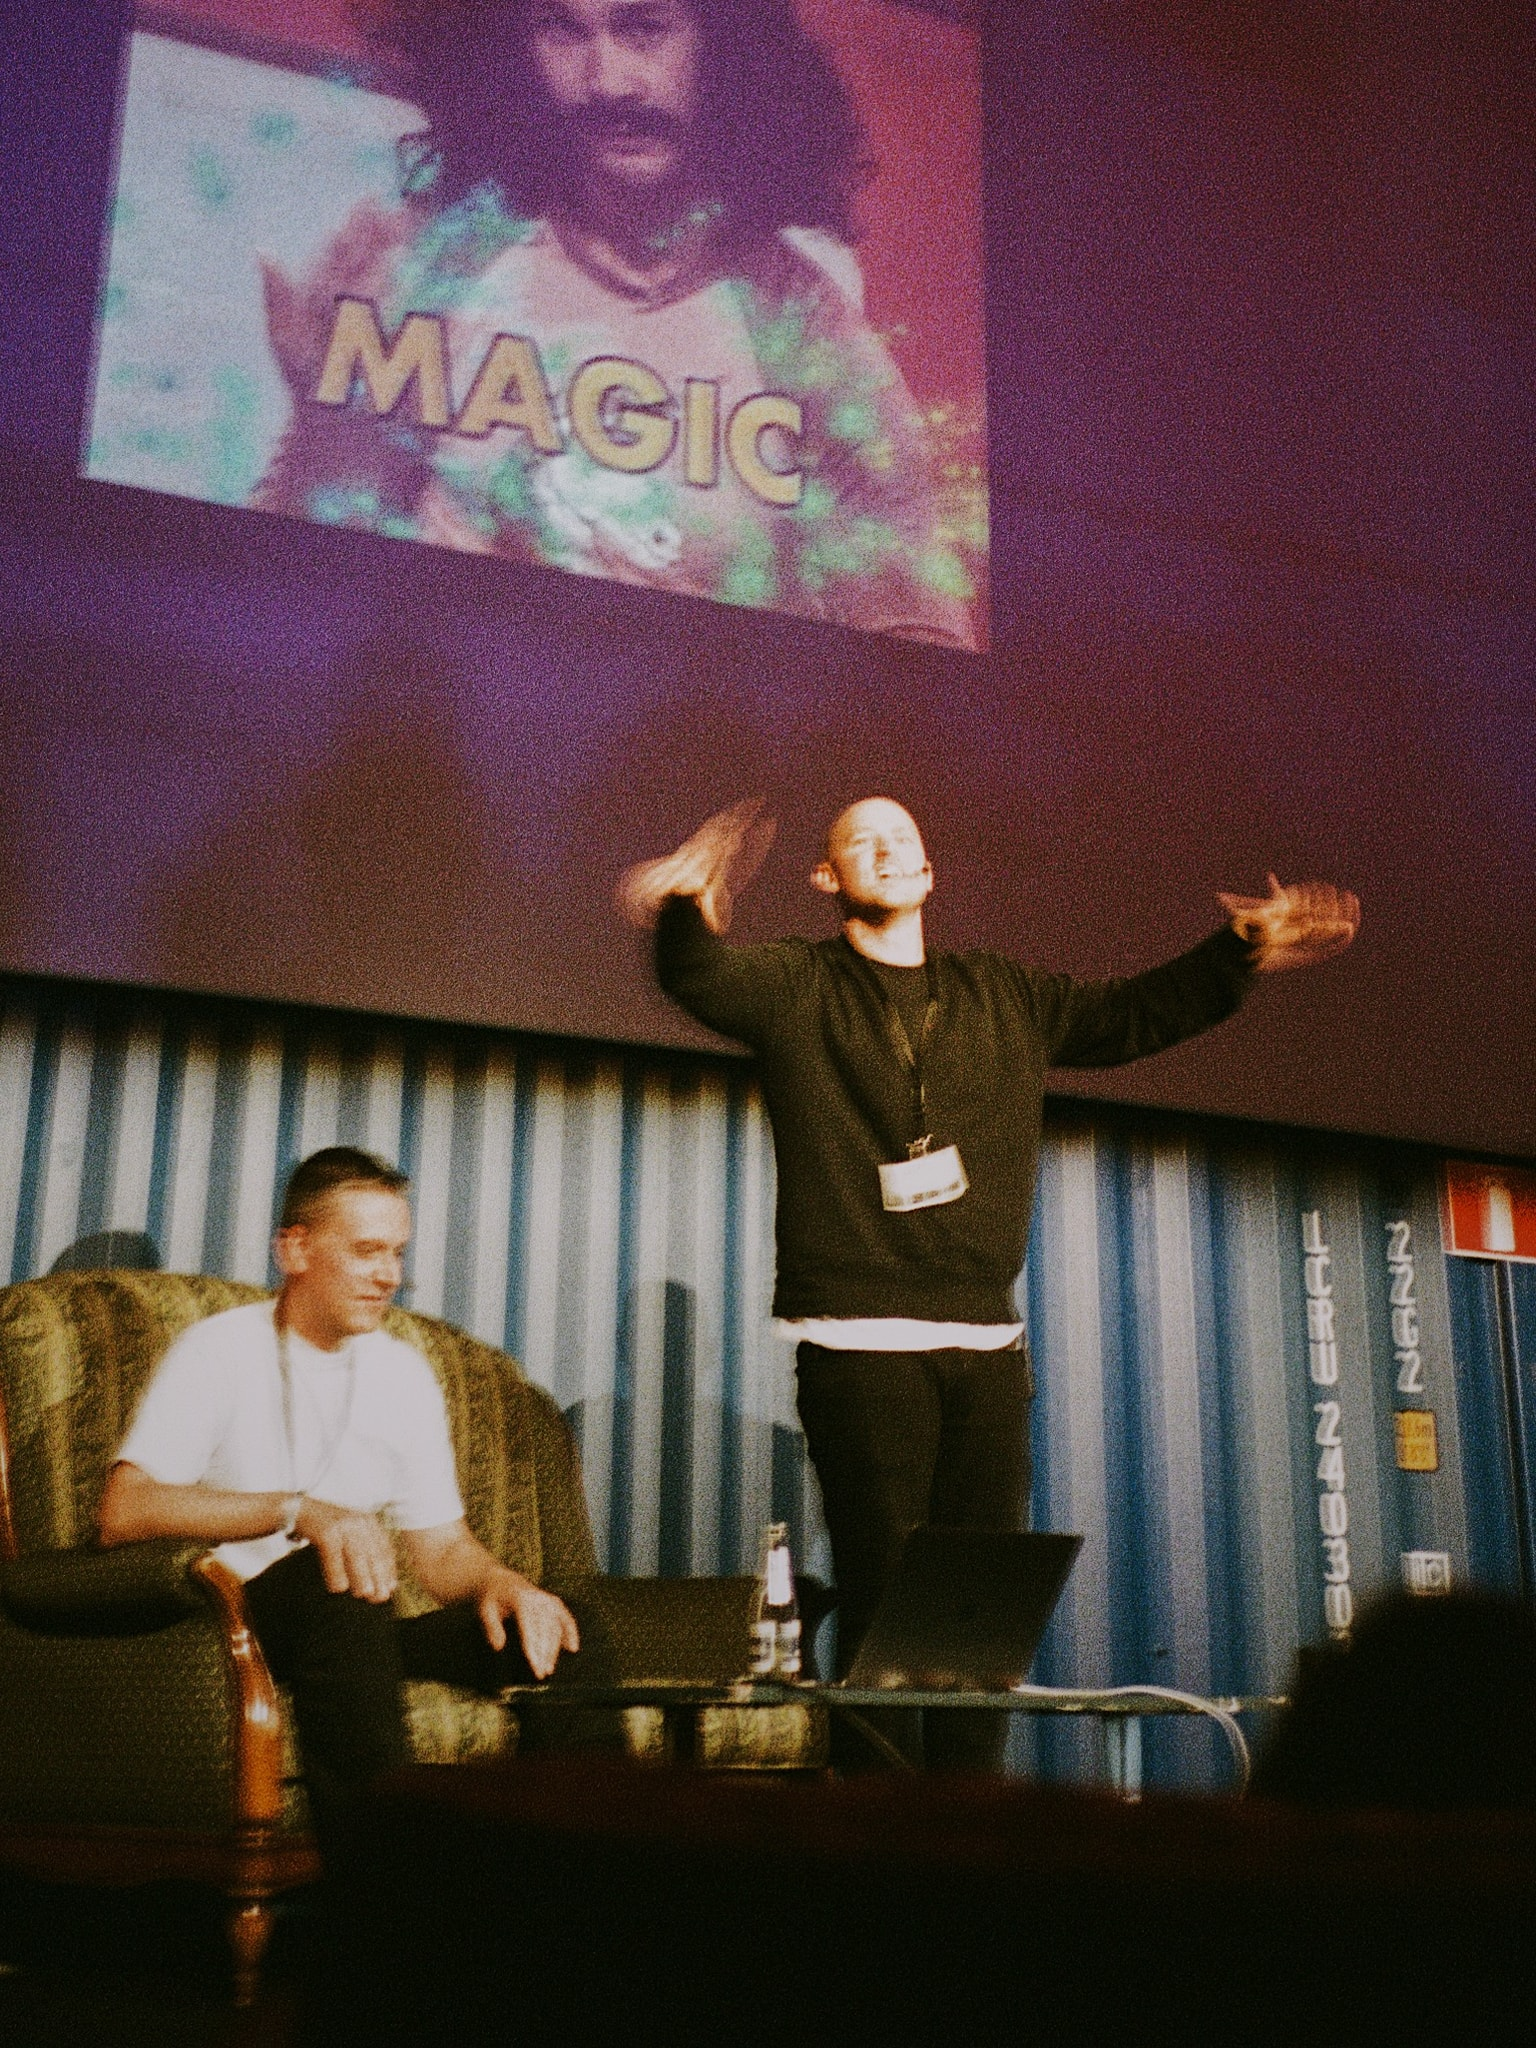 Adam, Stefan doing magic live on stage